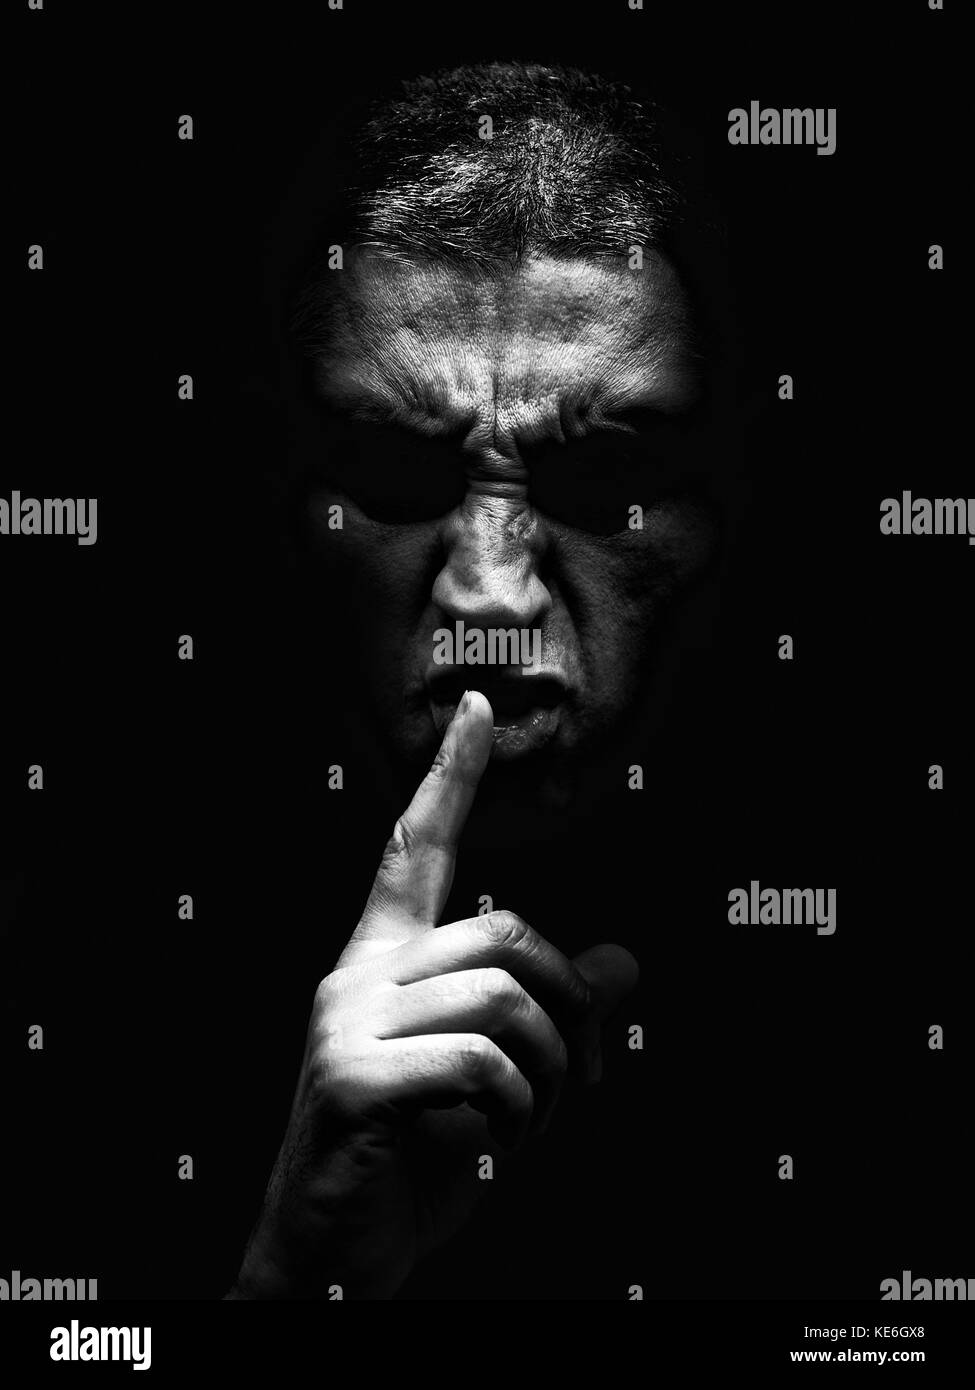 Furious mature man with aggressive look making silence sign in violent and threatening way. Black background / rage - Stock Image